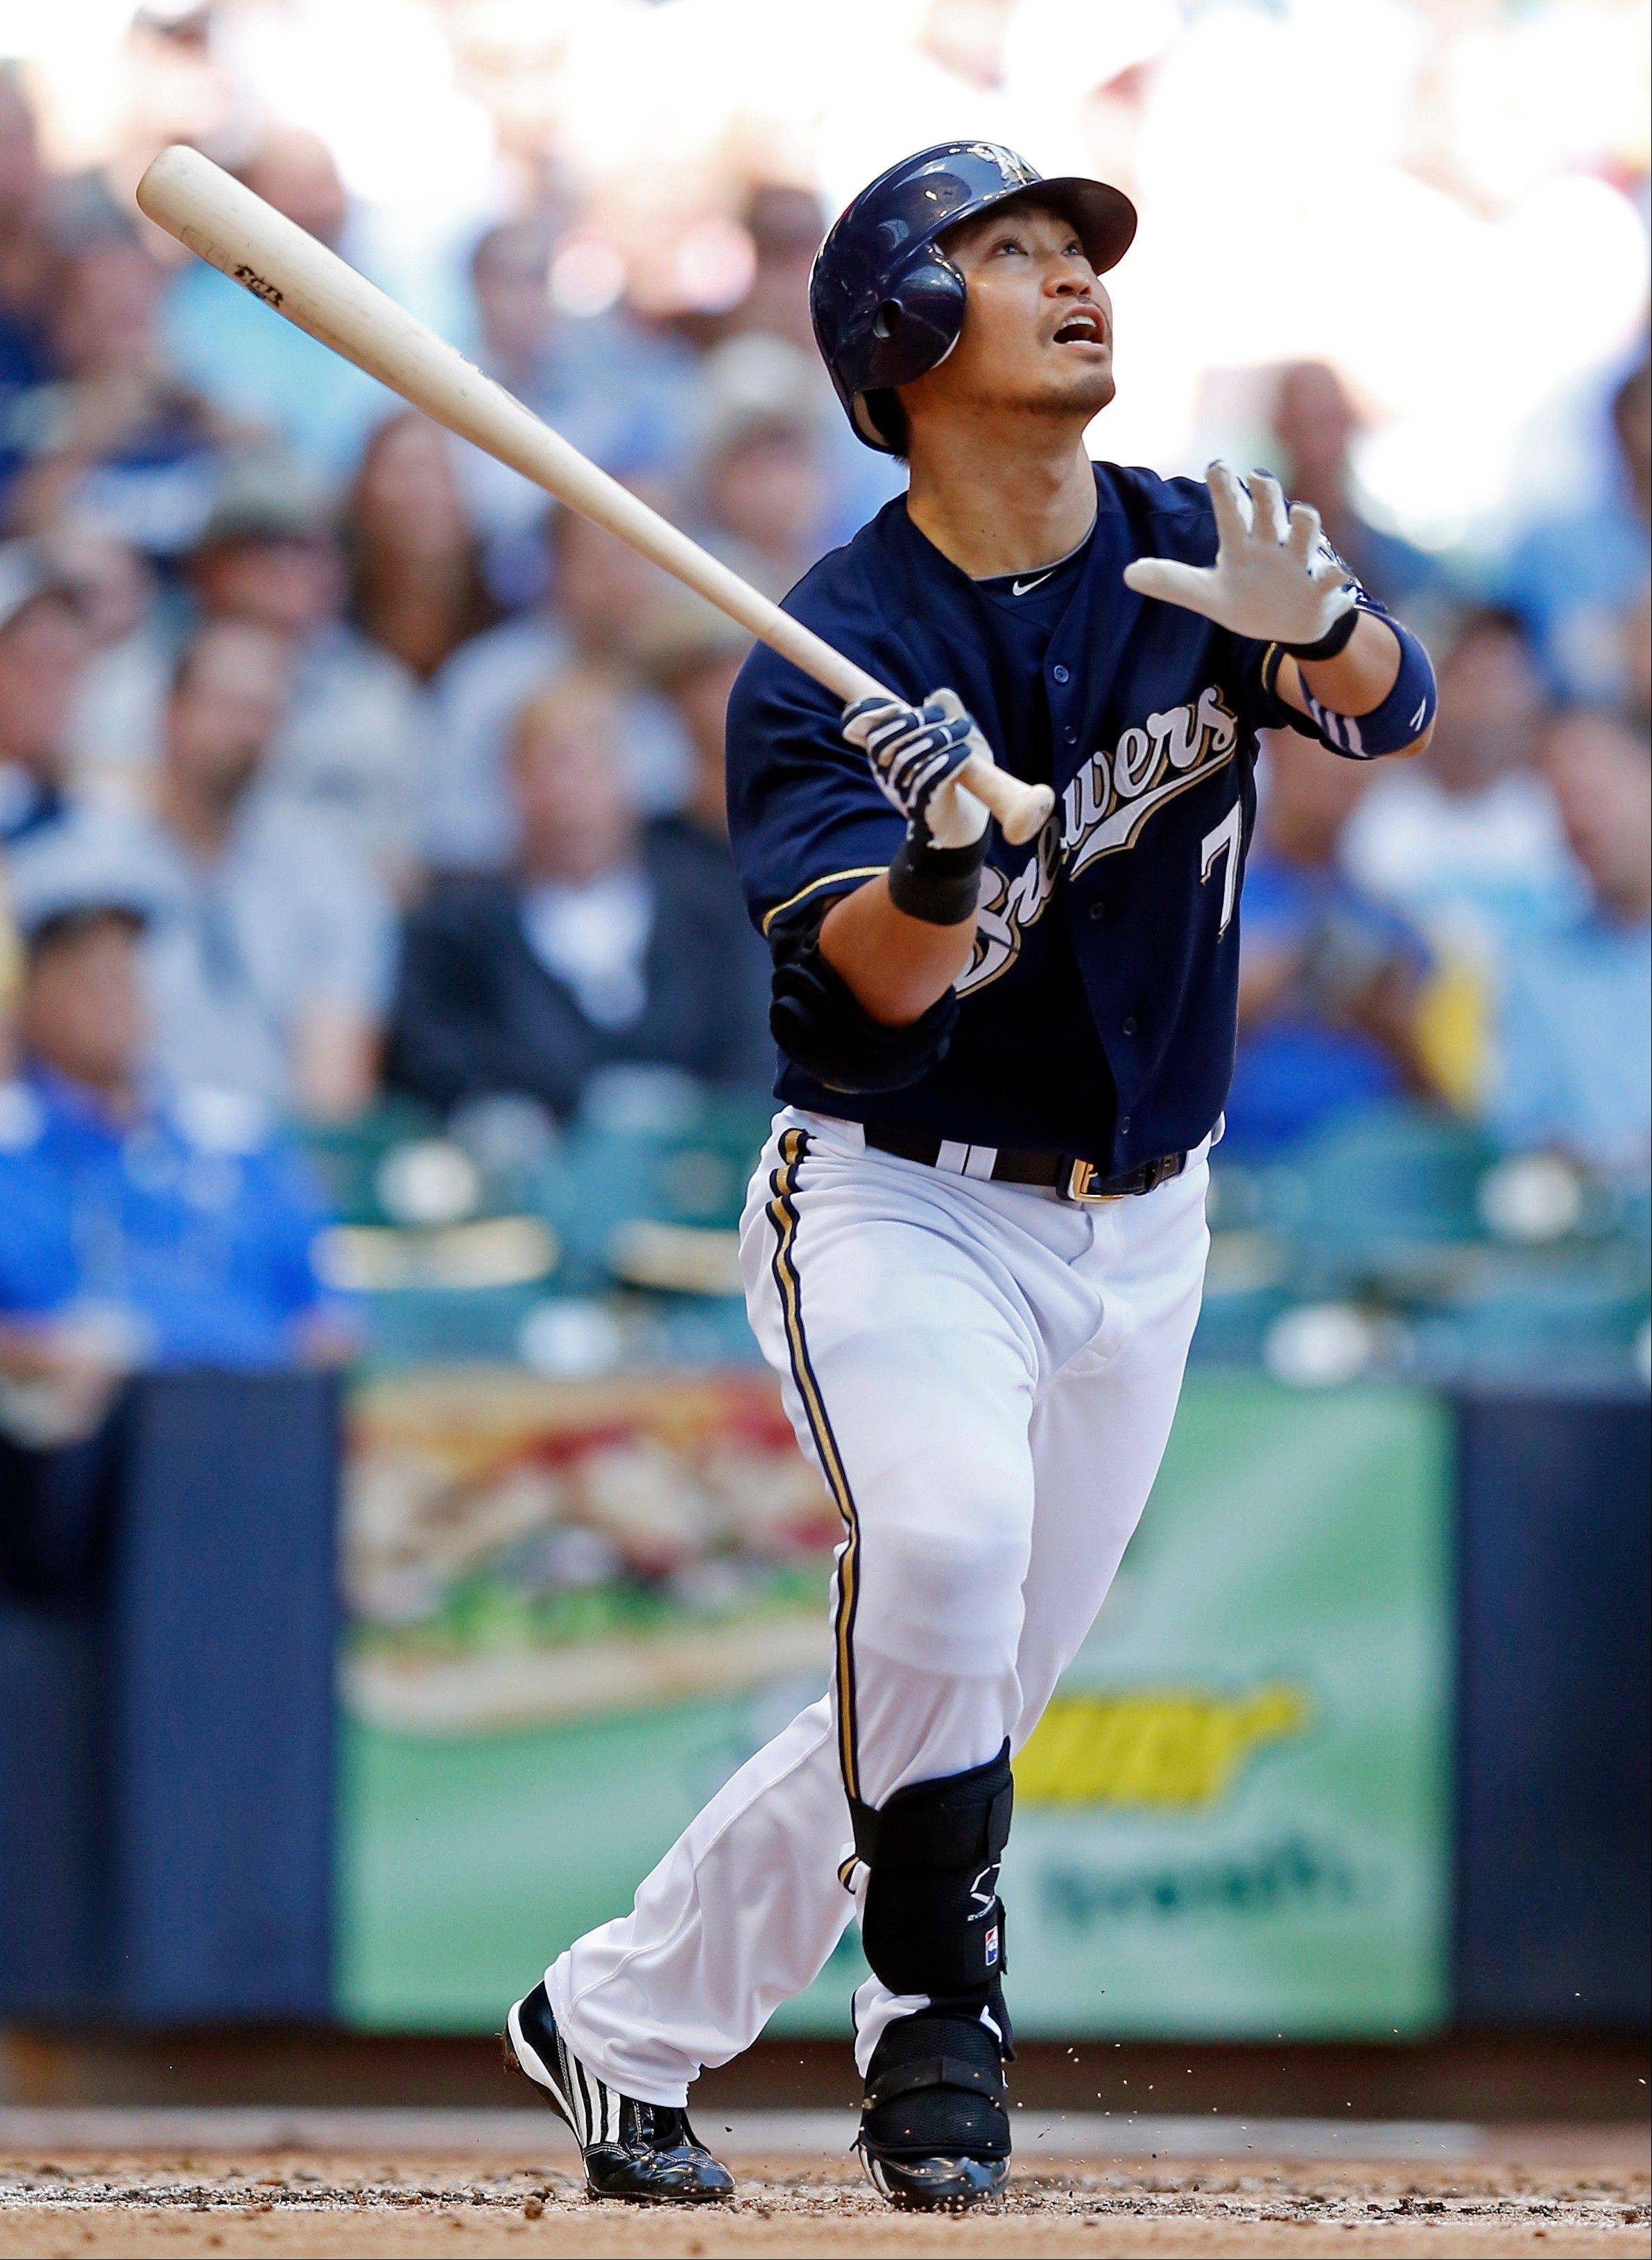 The Milwaukee Brewers' Norichika Aoki hits a solo home run against the Cubs Thursday during the fourth inning in Milwaukee.